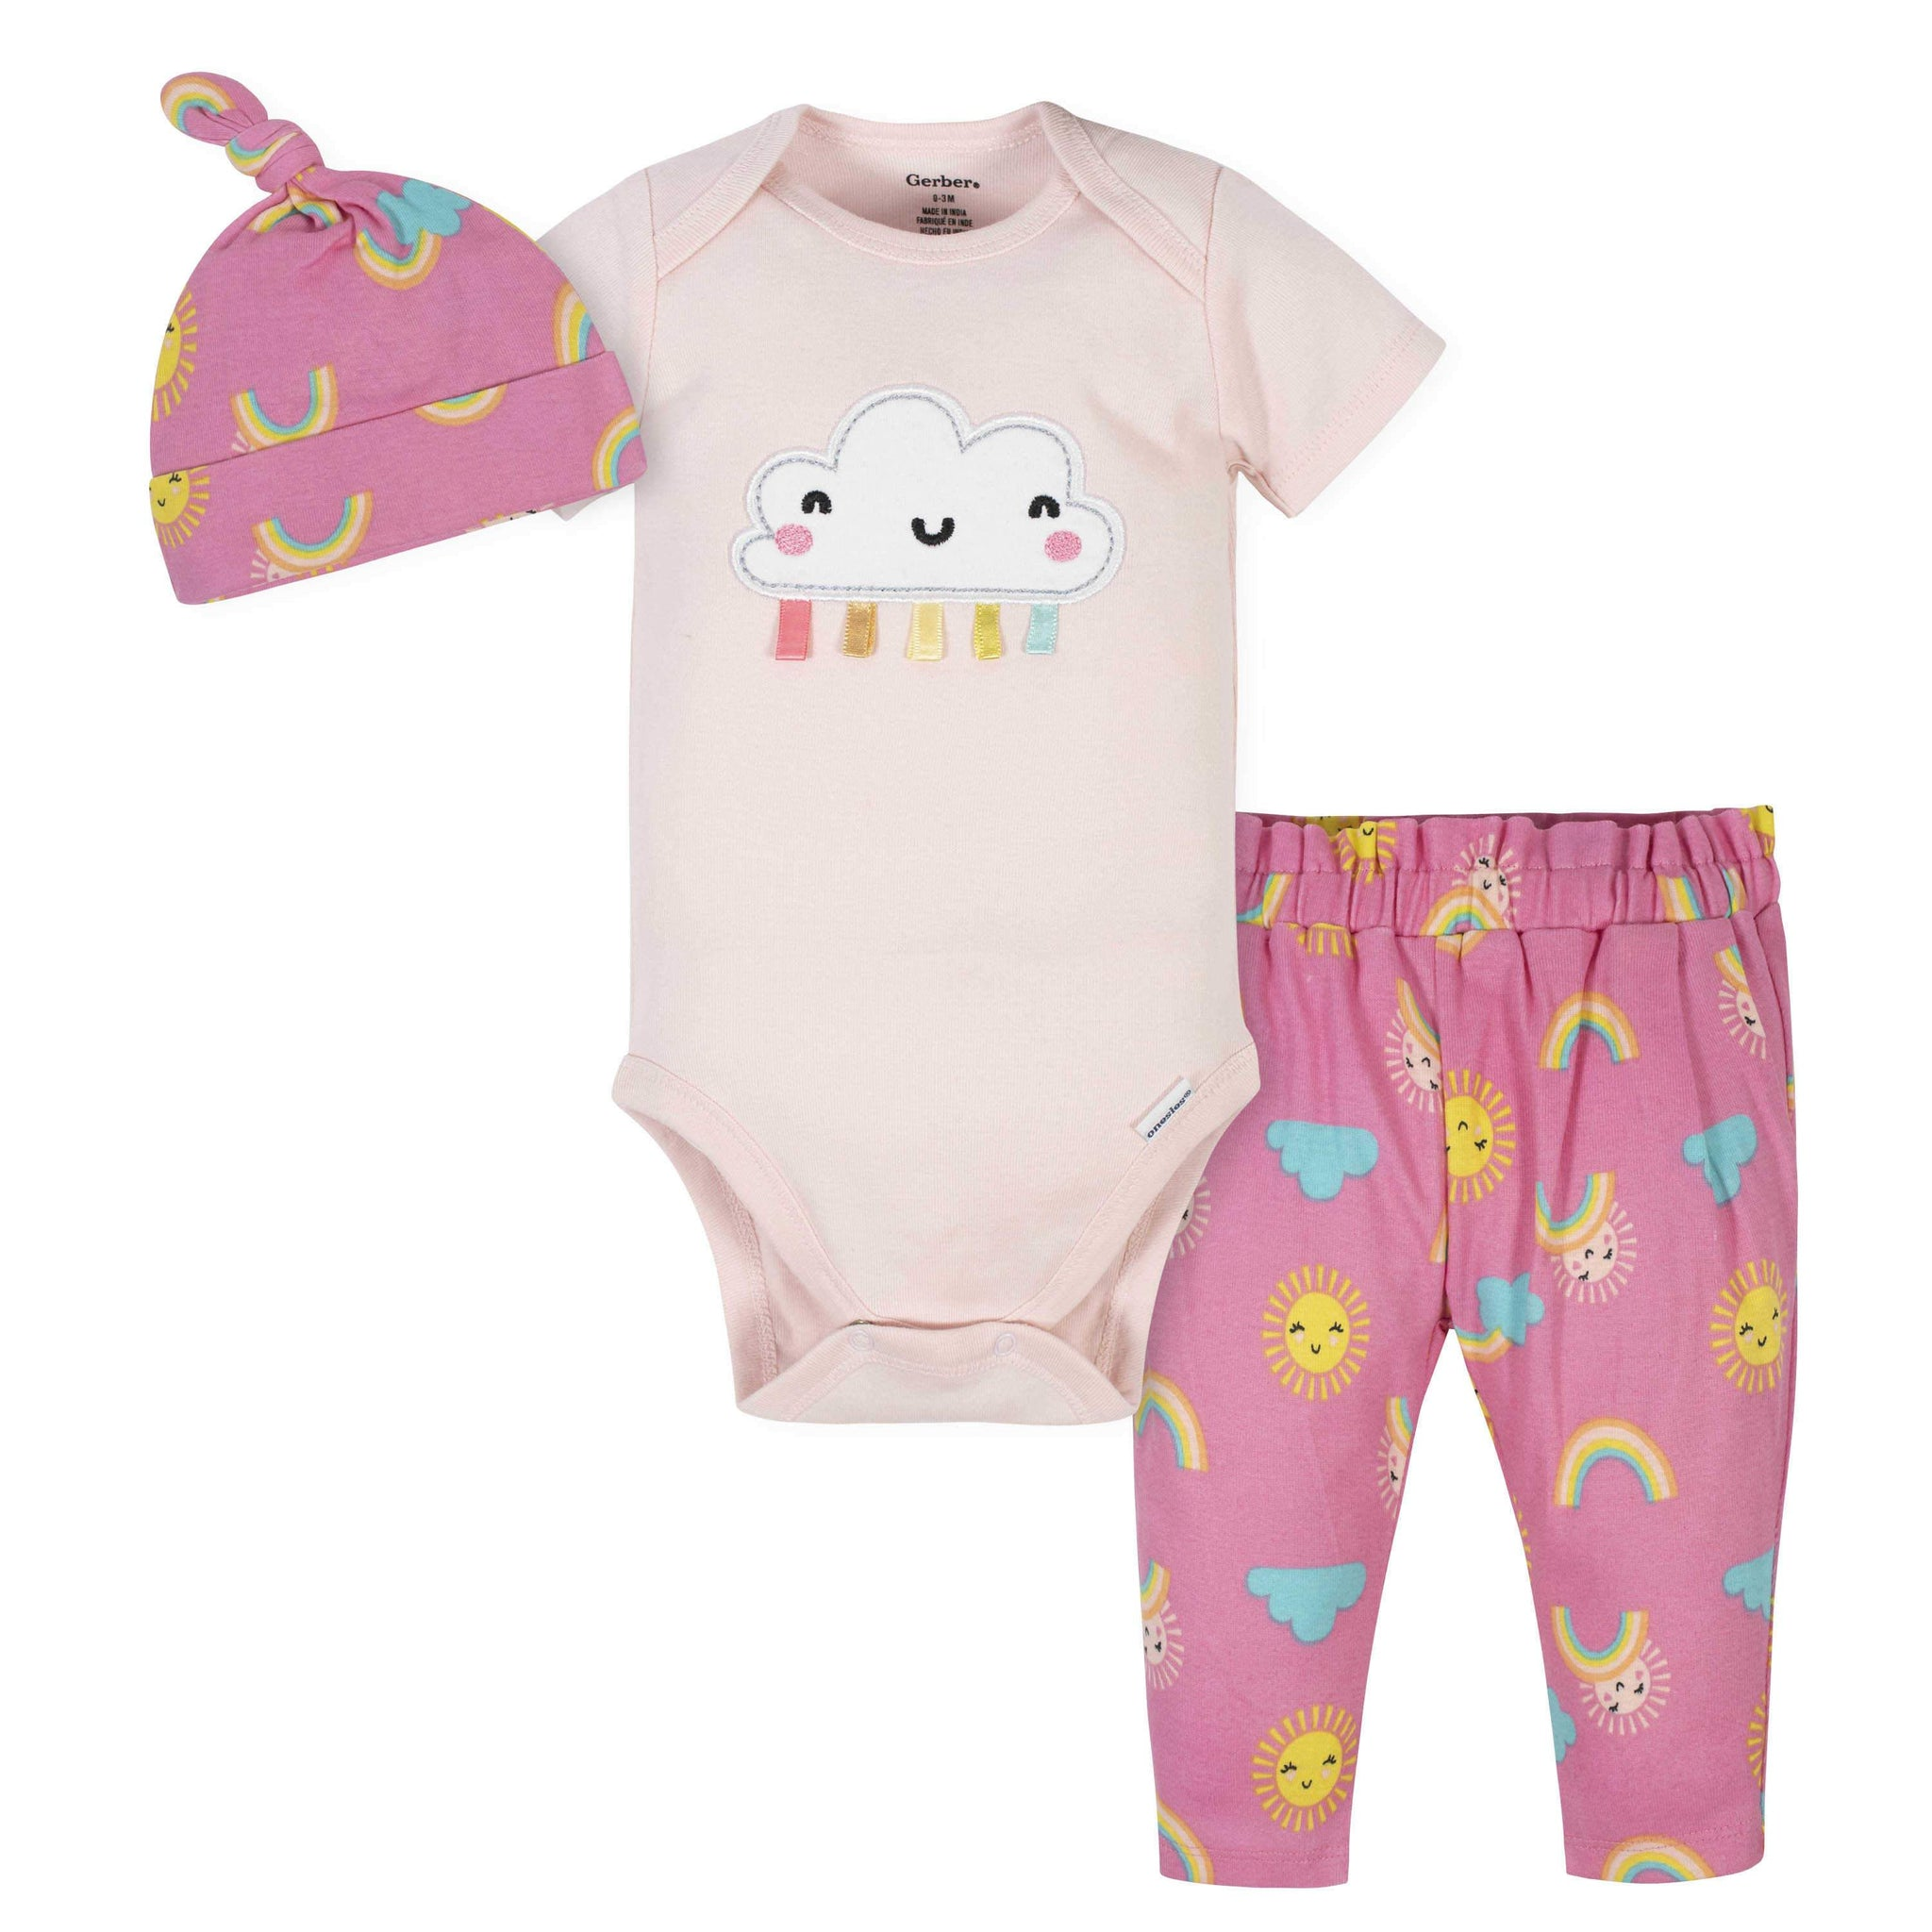 Gerber® 3-Piece Baby Girls Rainbows Bodysuit, Pants & Cap Set-Gerber Childrenswear